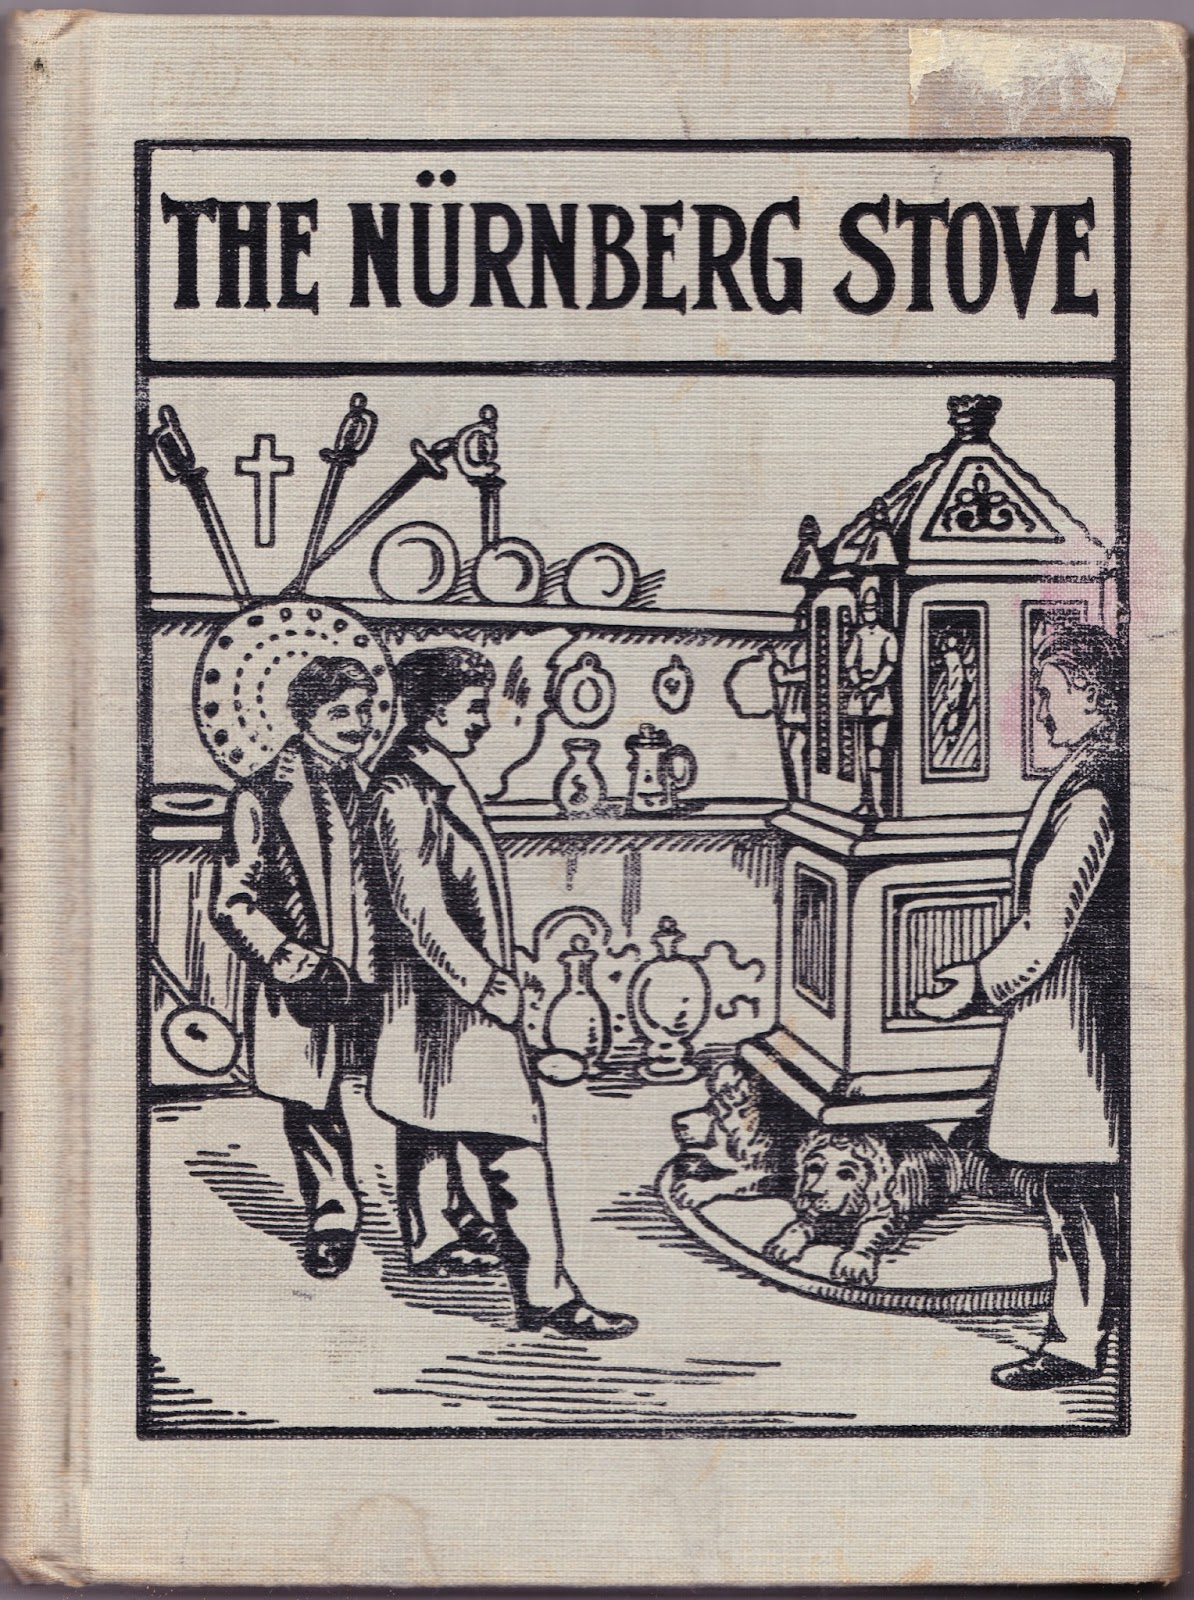 Cover of the book The Nürnberg Stove by Ouida